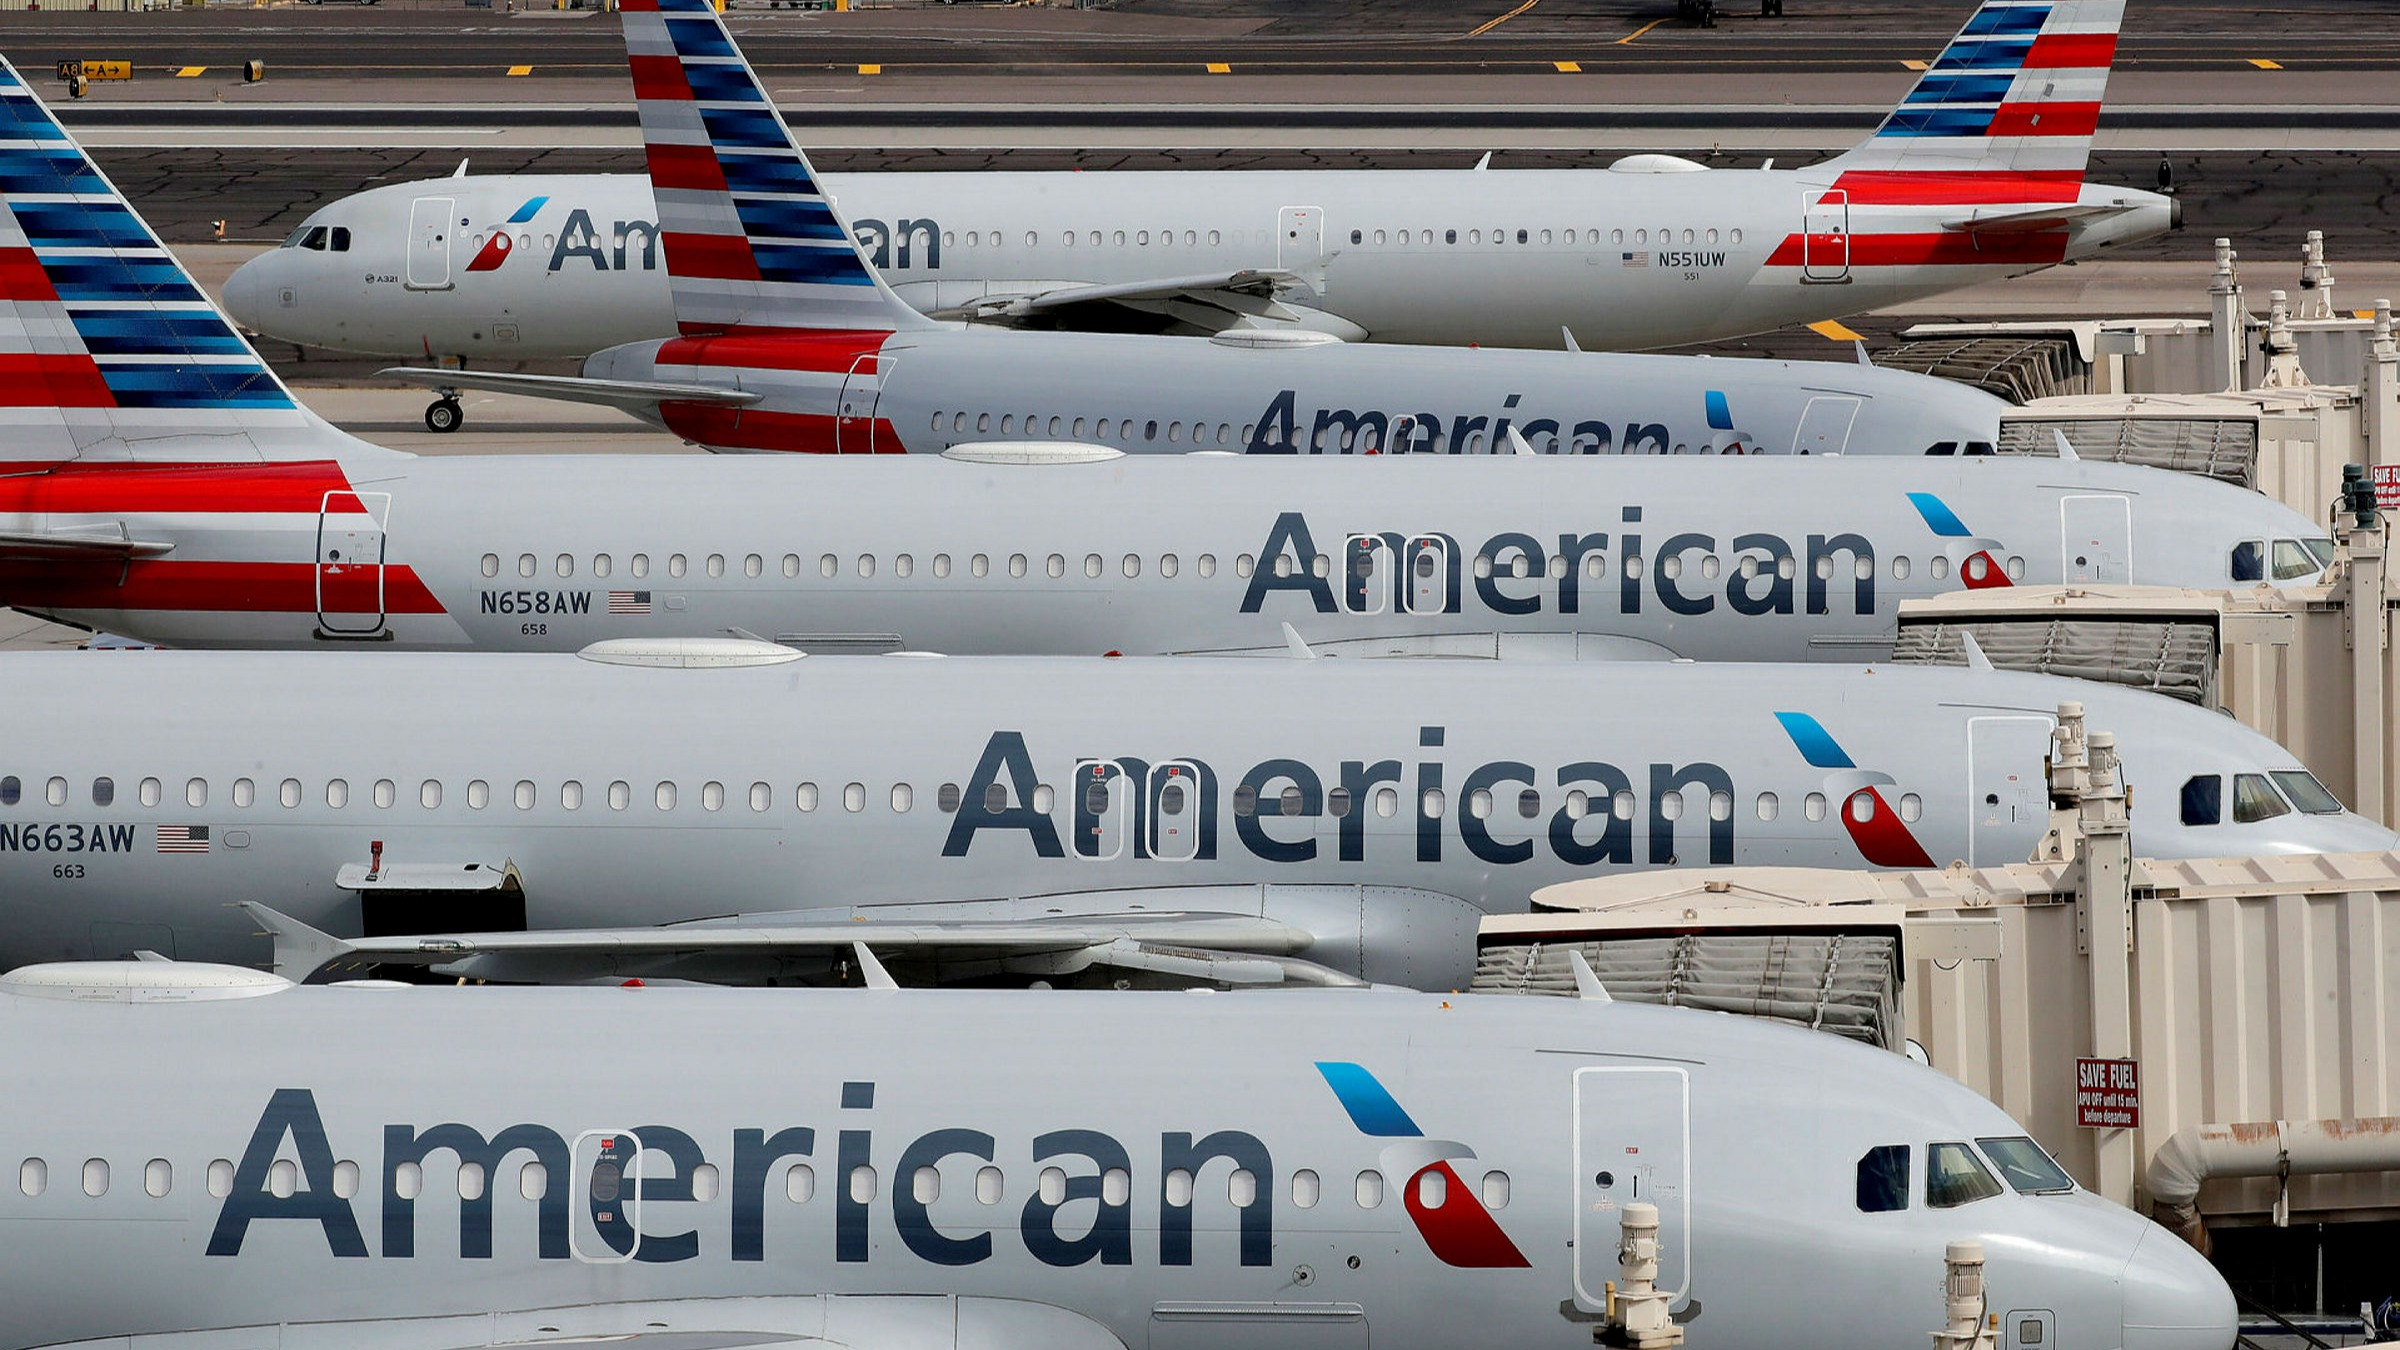 American Airlines could have over 20,000 excess employees | Financial Times